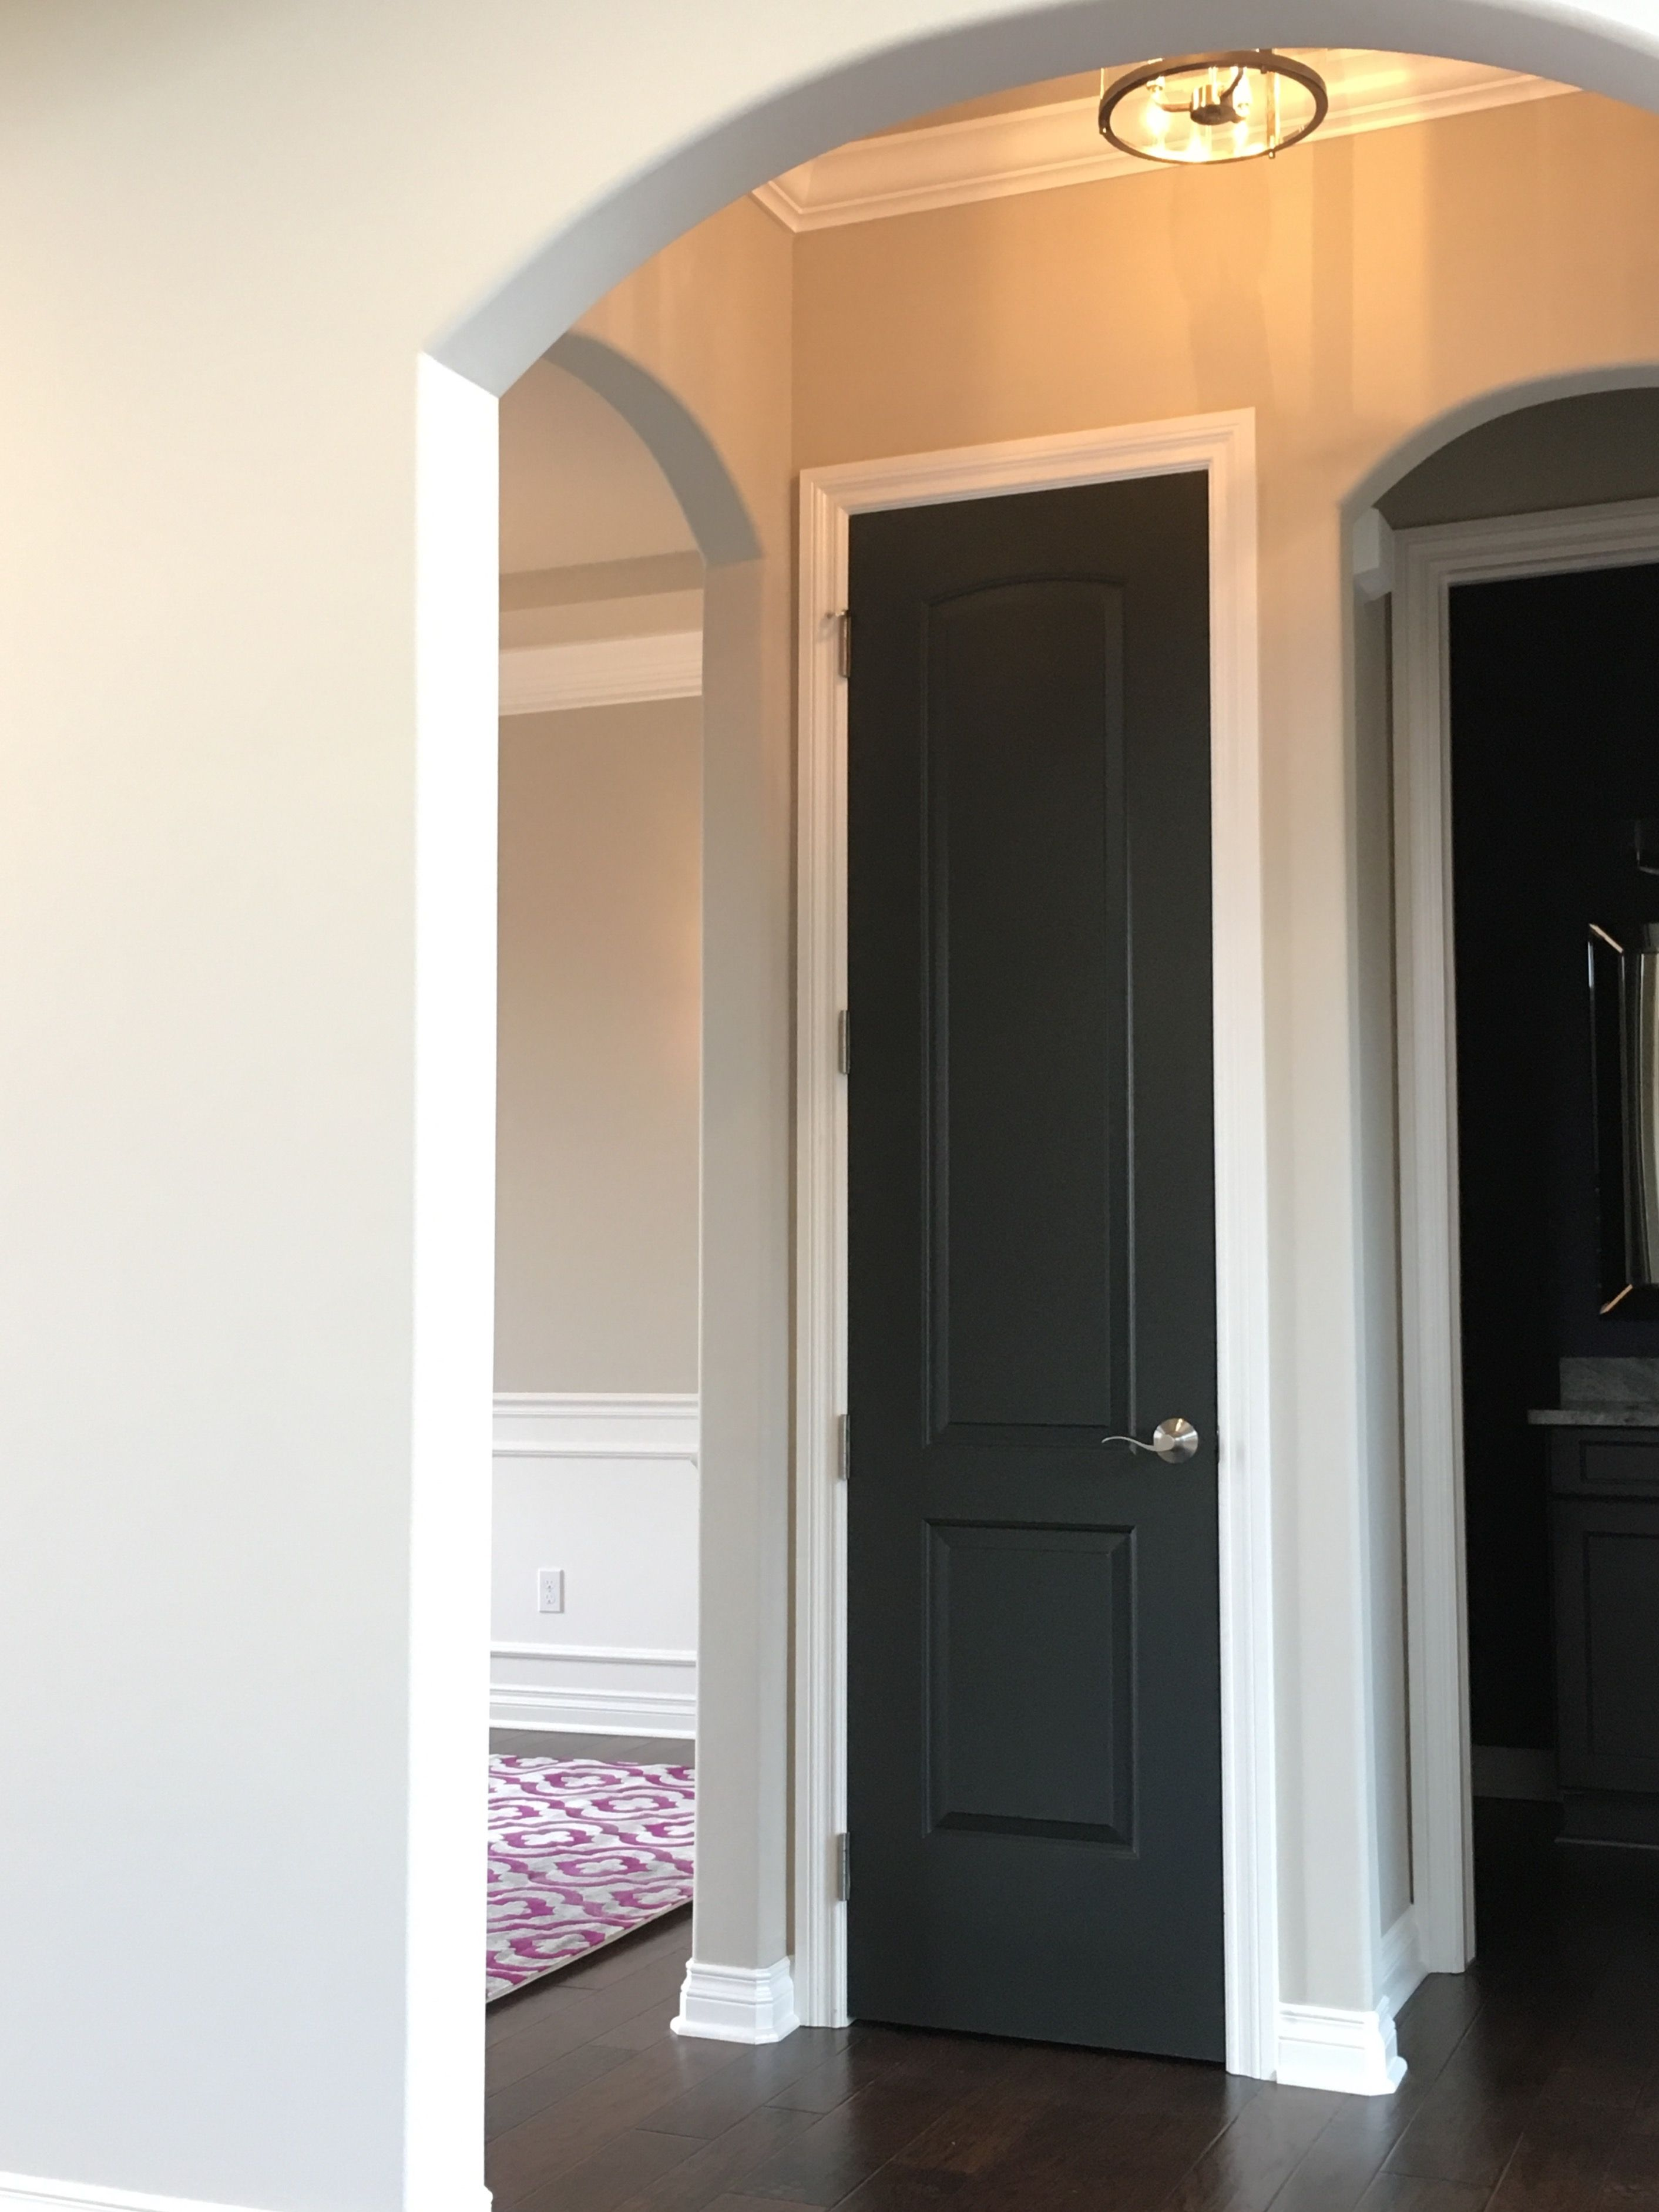 Wall sherwin williams accessible beige dark door sw for Painting trim darker than walls